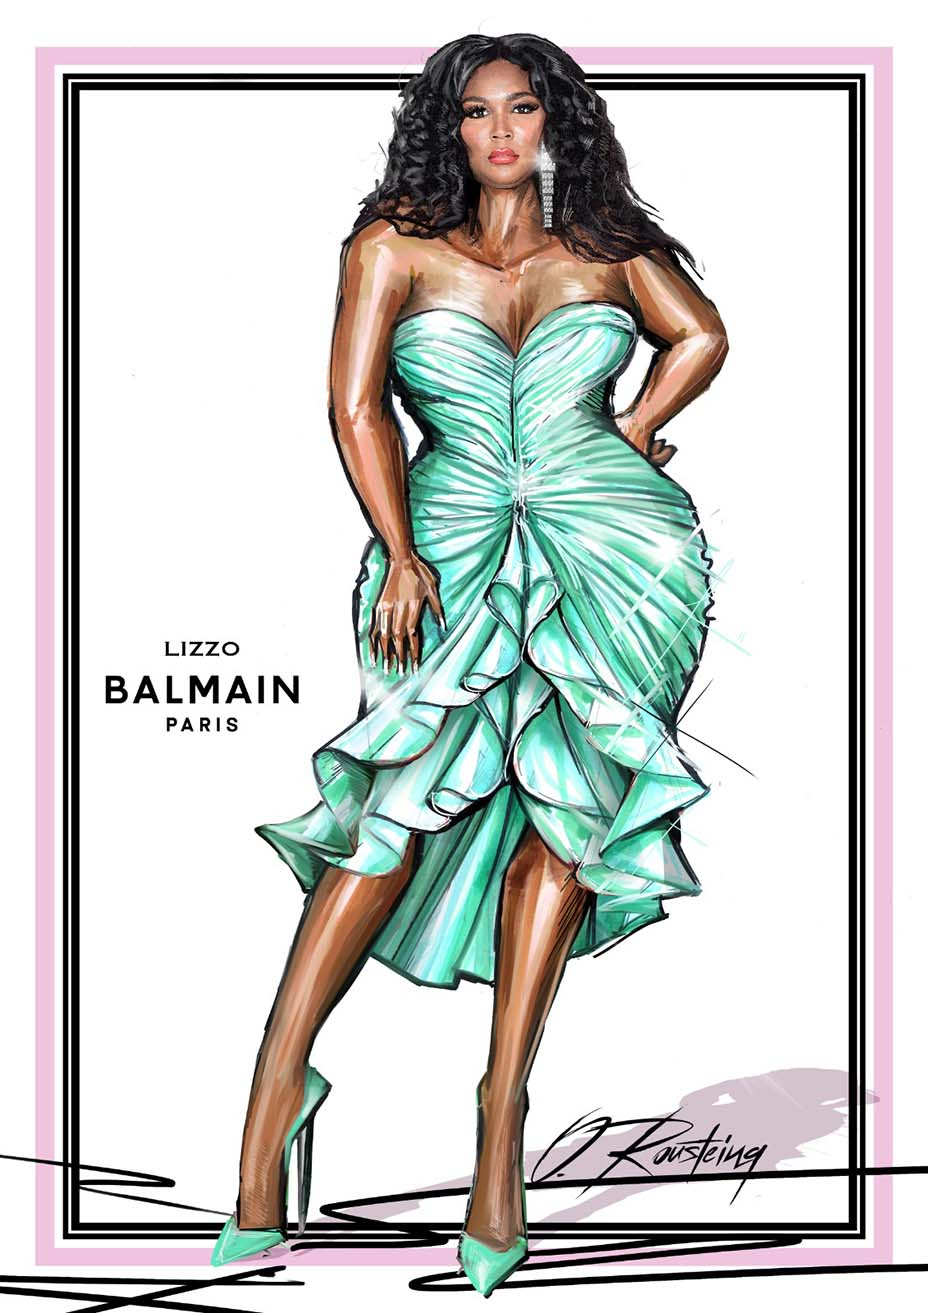 Balmain sketch of dress for Lizzo at the Grammy Awards